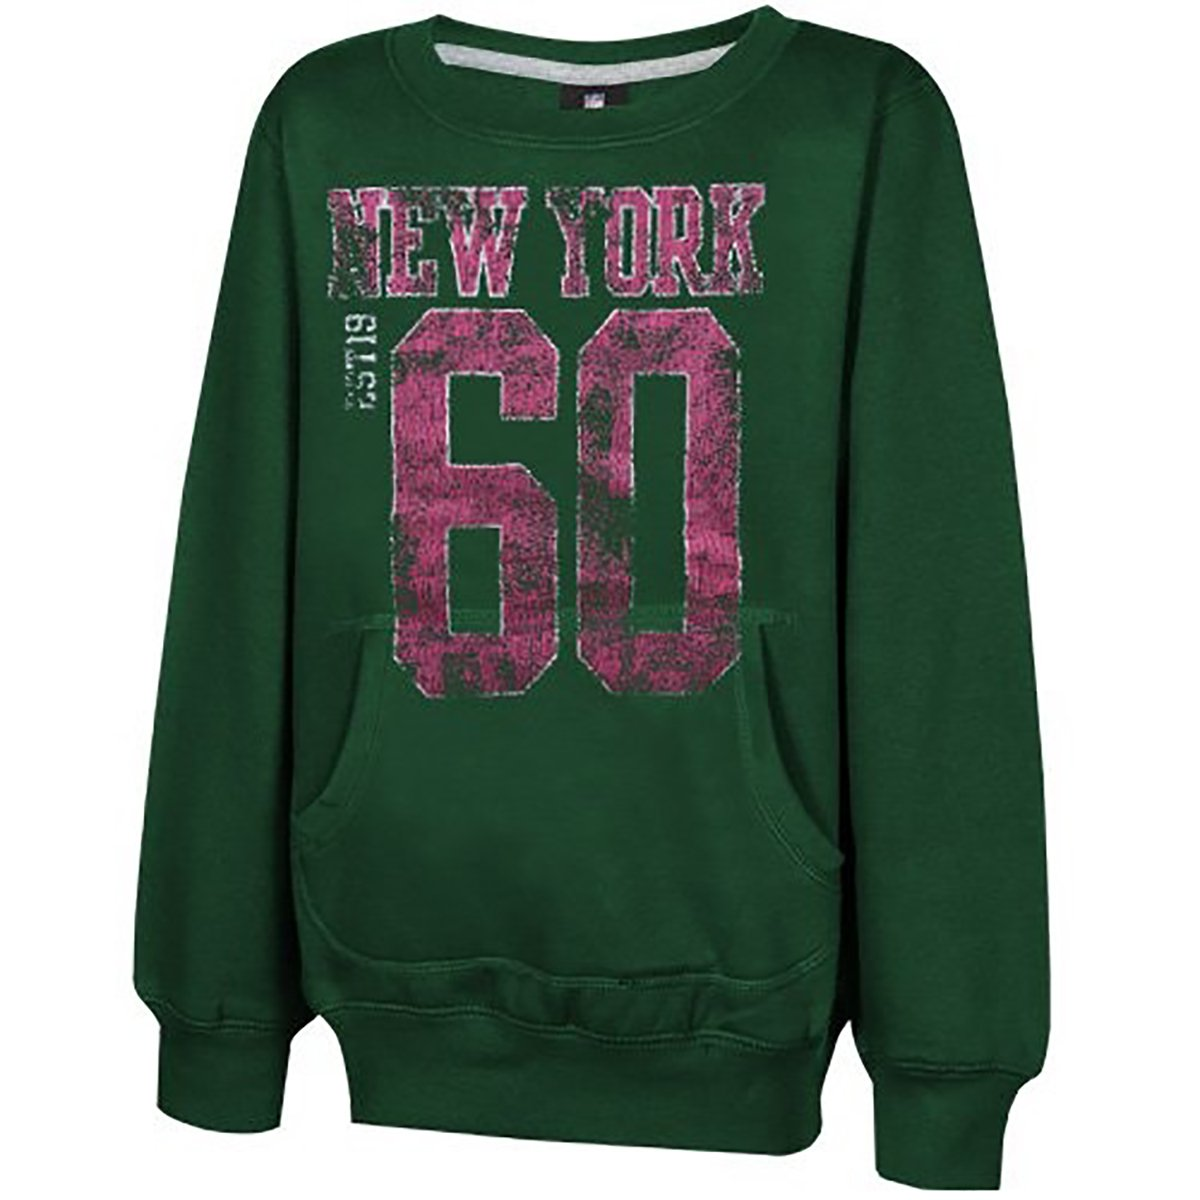 e8527ad8 Amazon.com: New York Jets Youth Girls Scoop Neck Crew Neck Green ...